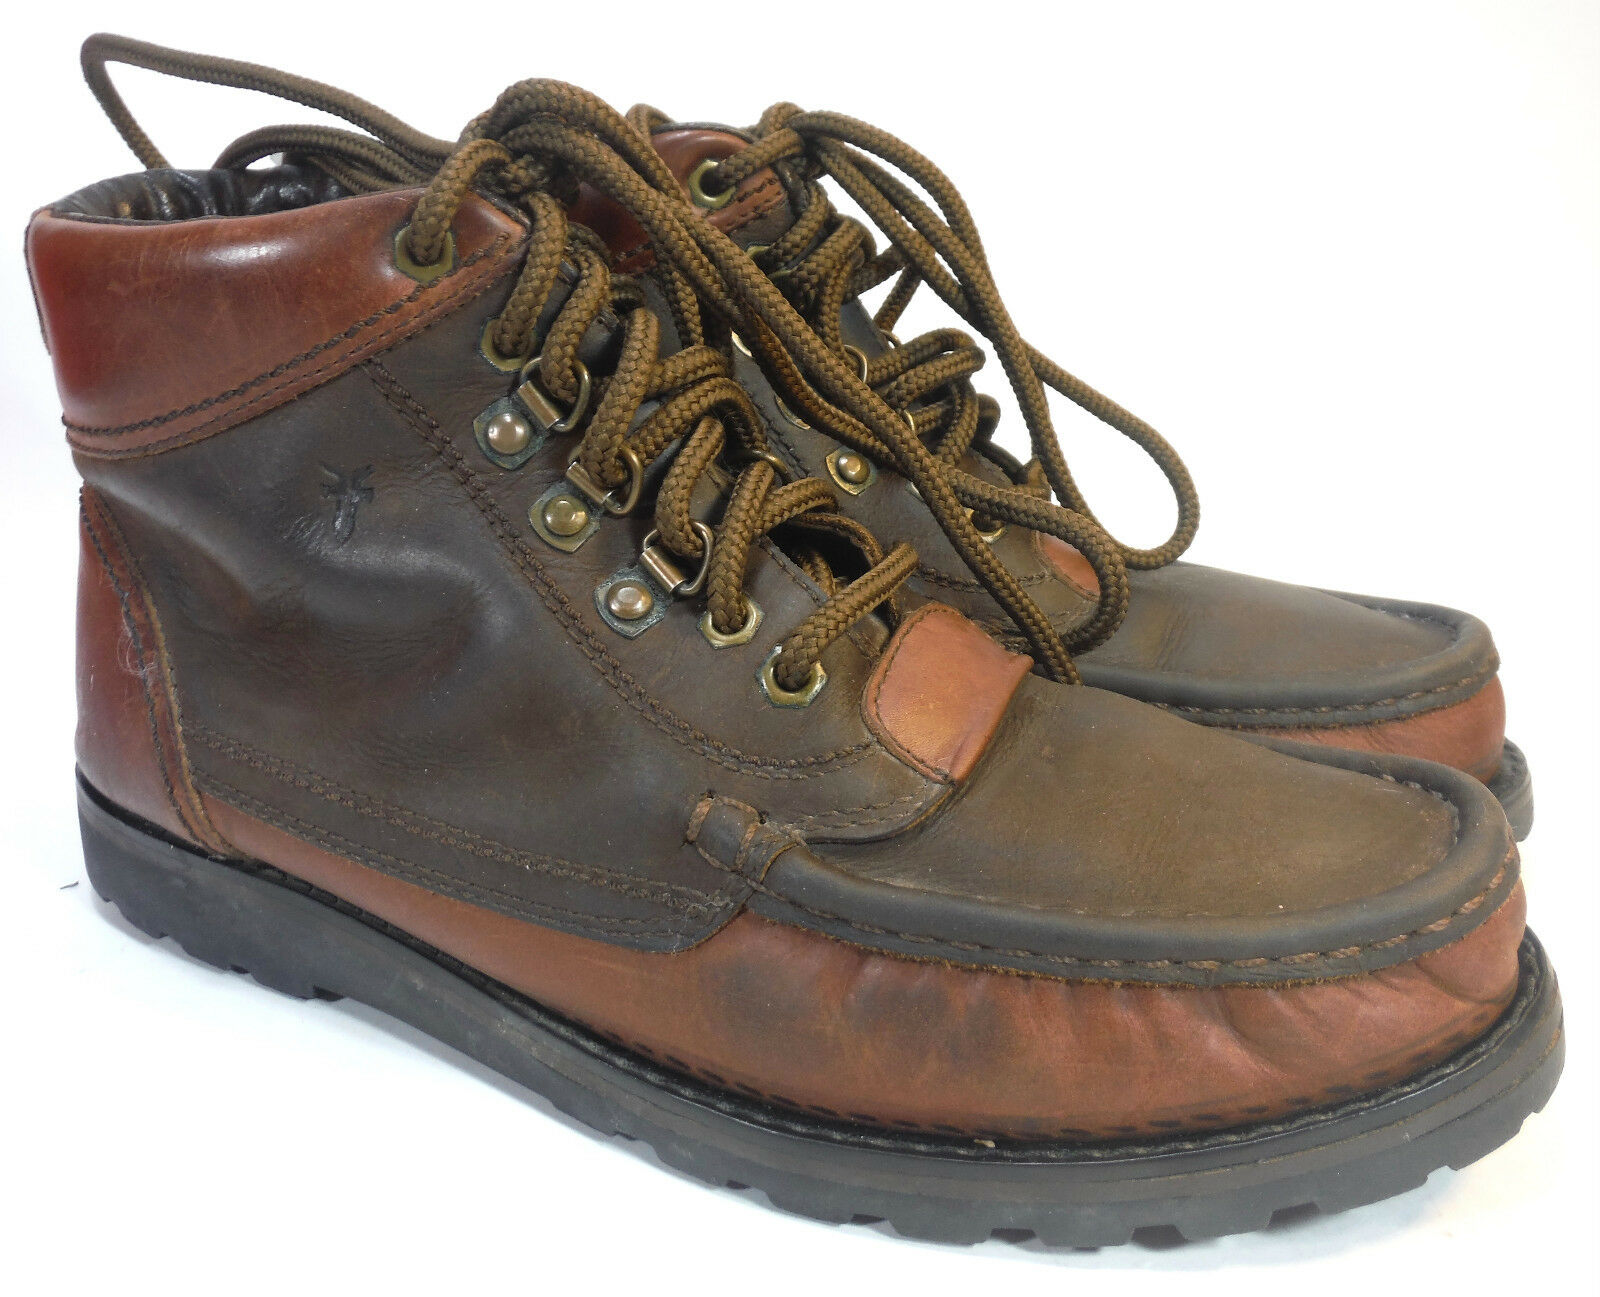 Mens FRYE brown 2 tone oiled leather chukka lug sole ankle boots 9.5  328